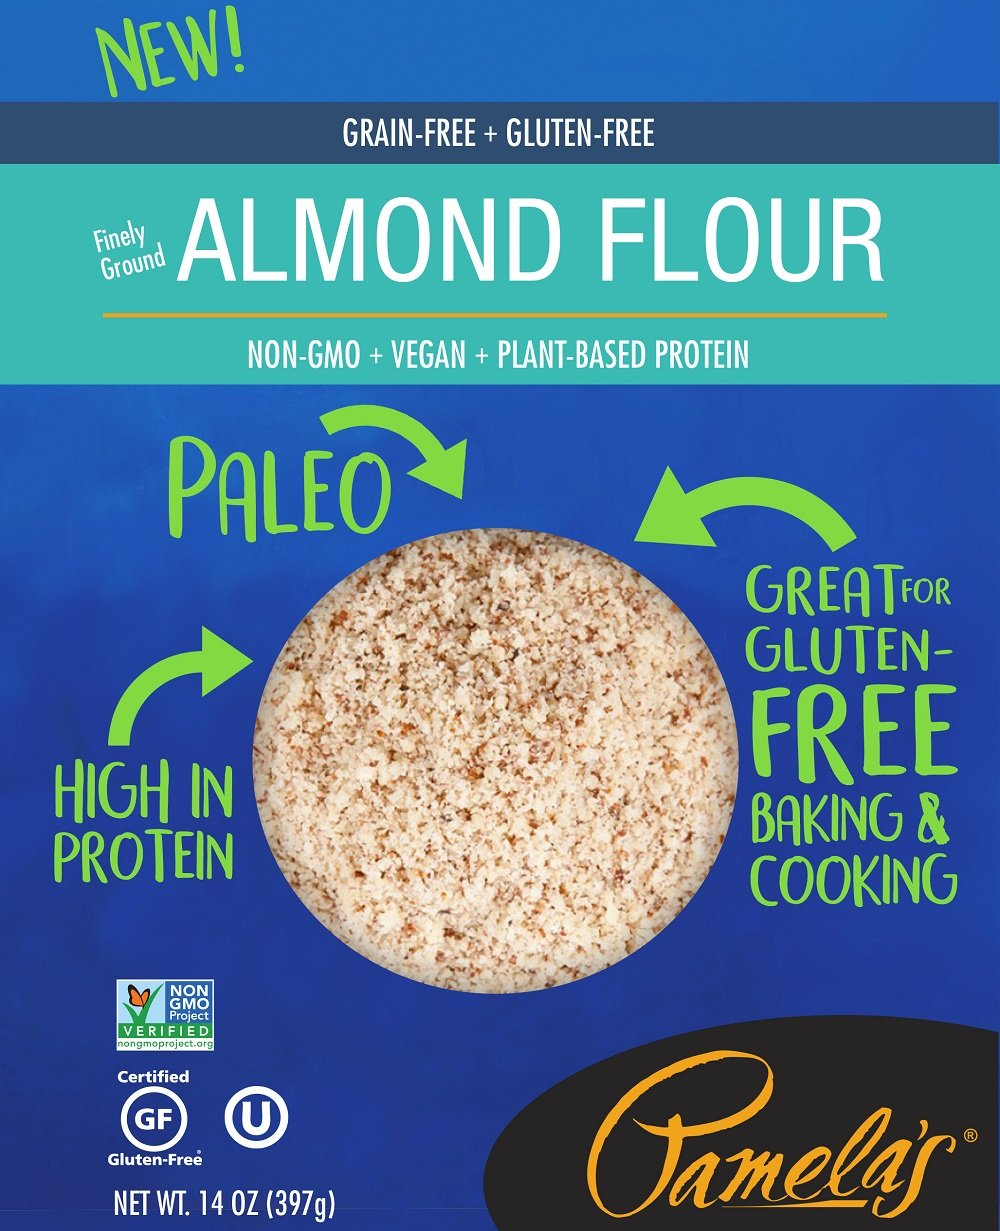 Pamela's Grain-Free and Gluten Free Paleo Almond Flour, 6 Count